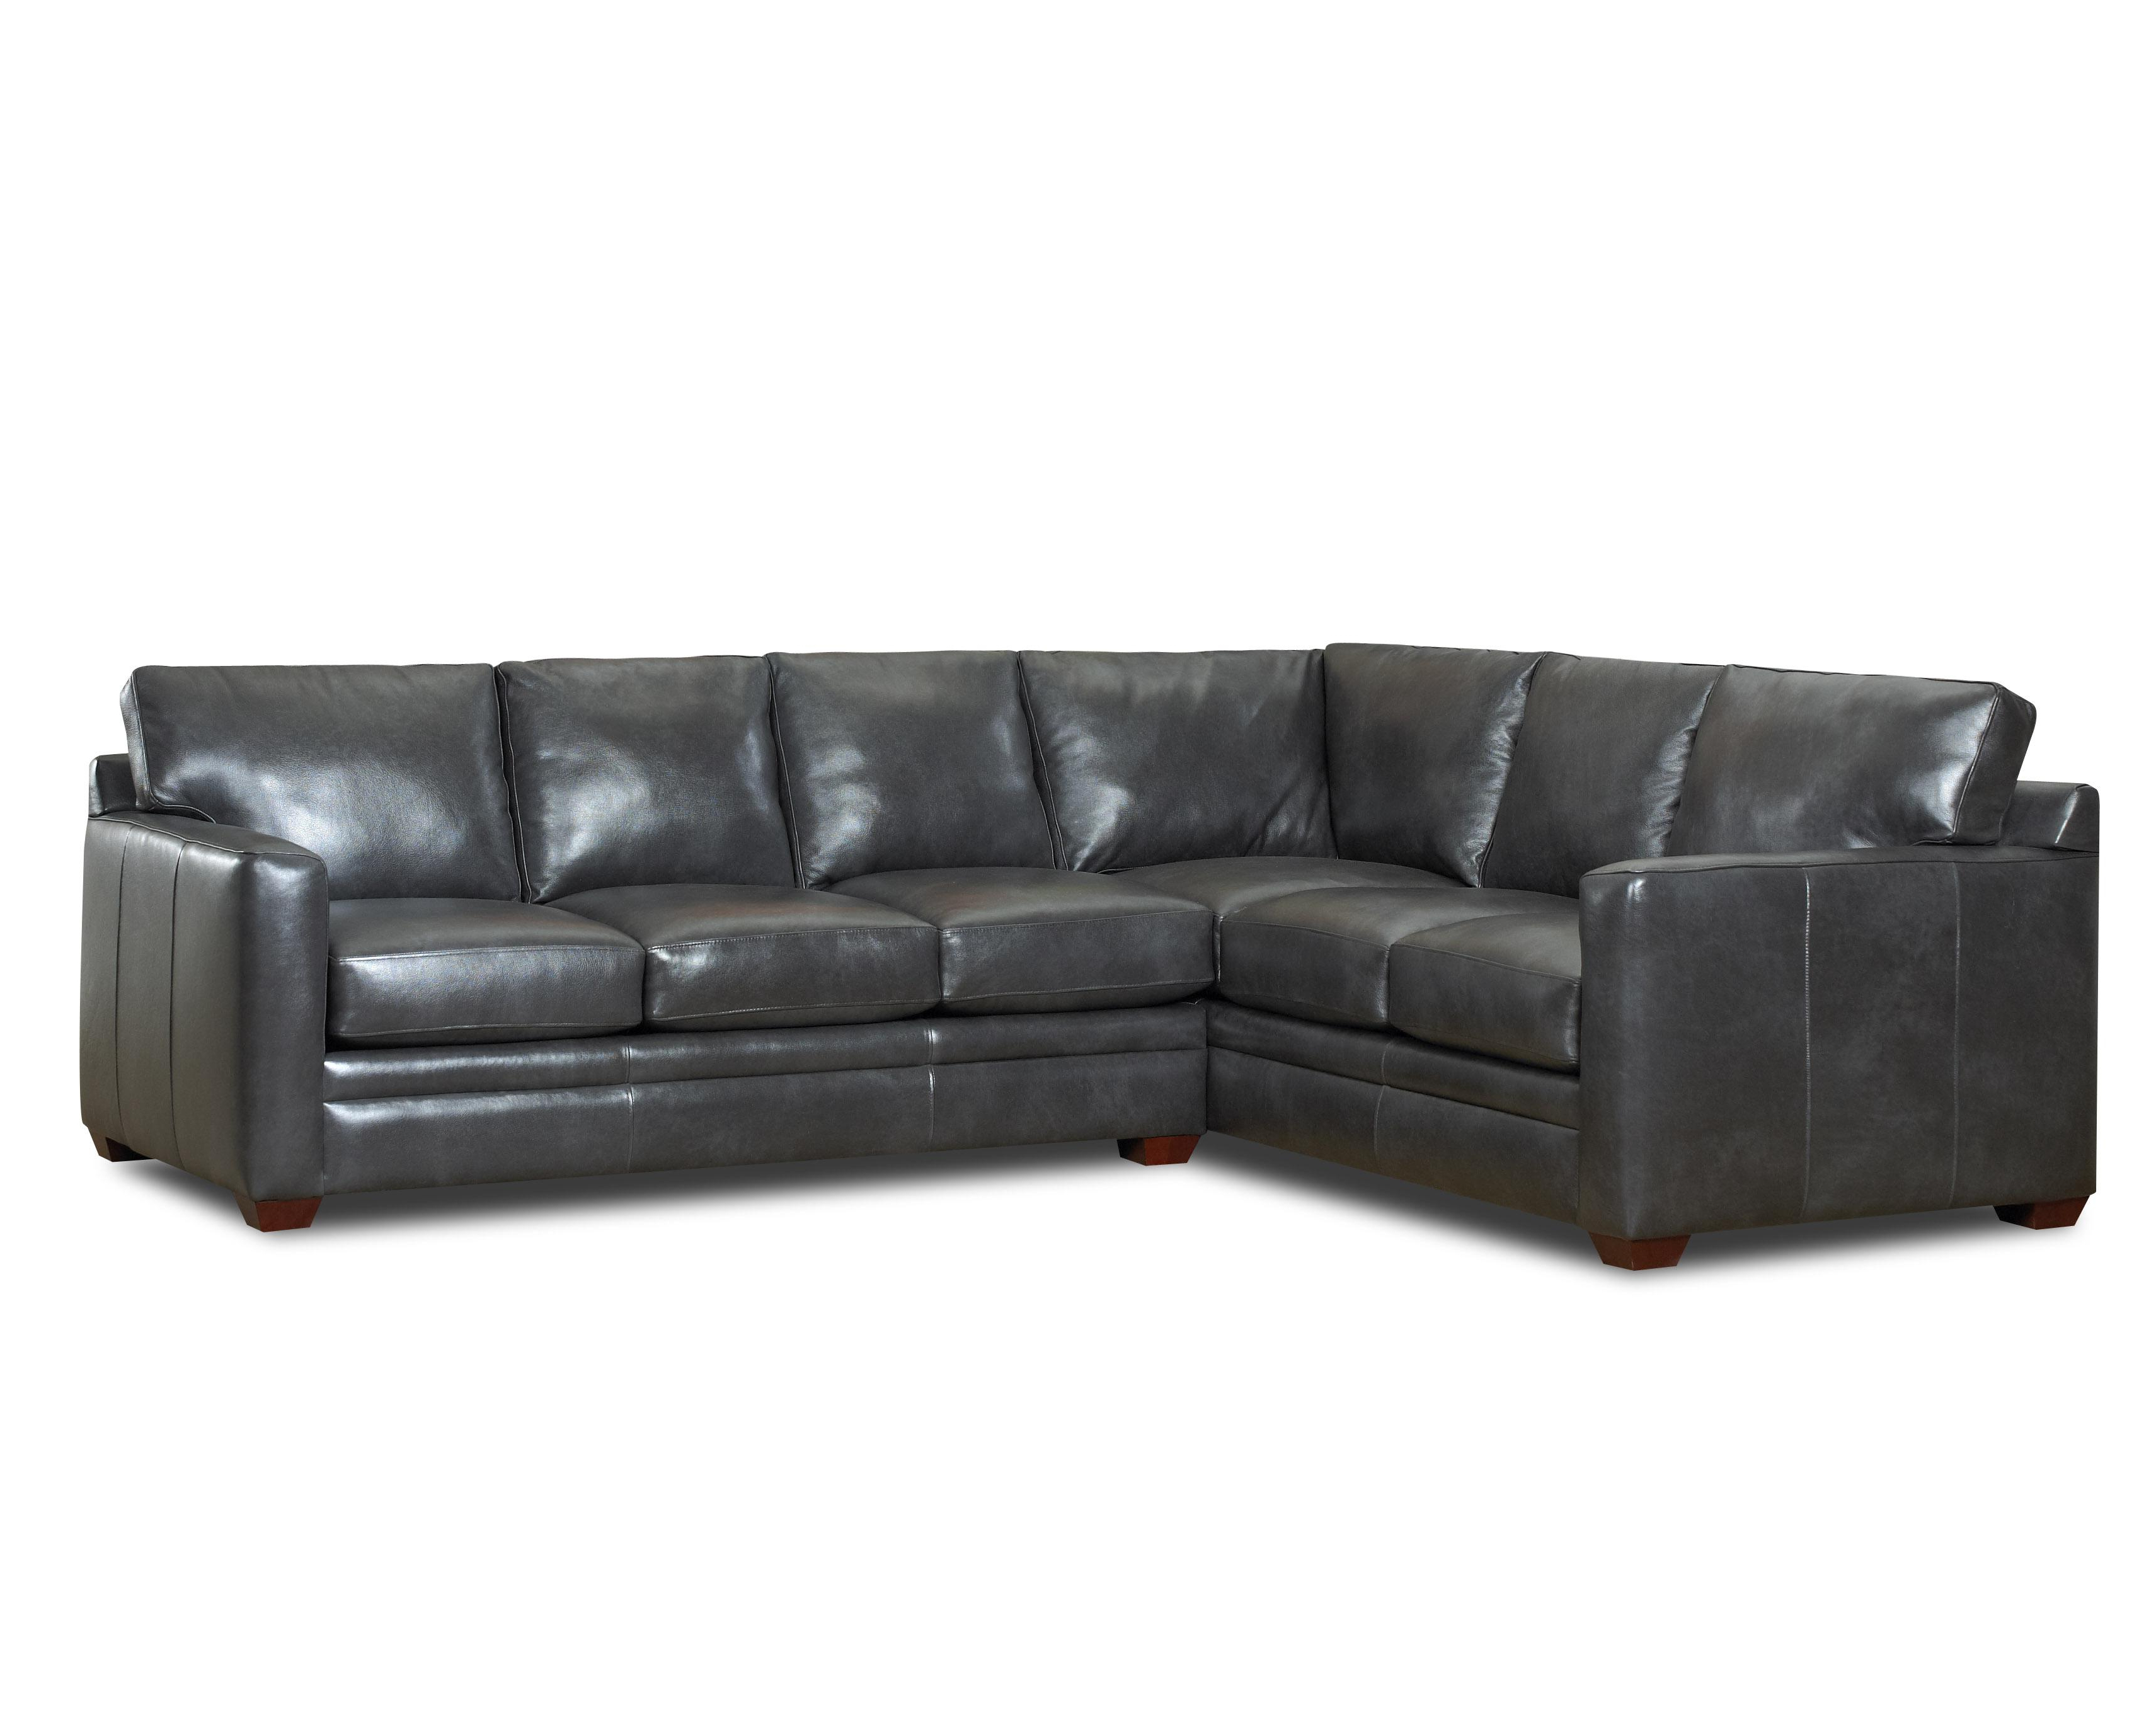 2019 Declan 3 Piece Power Reclining Sectionals With Left Facing Console Loveseat Regarding Unique Klaussner Leather Sectional Sofa – Sofas (Gallery 16 of 20)